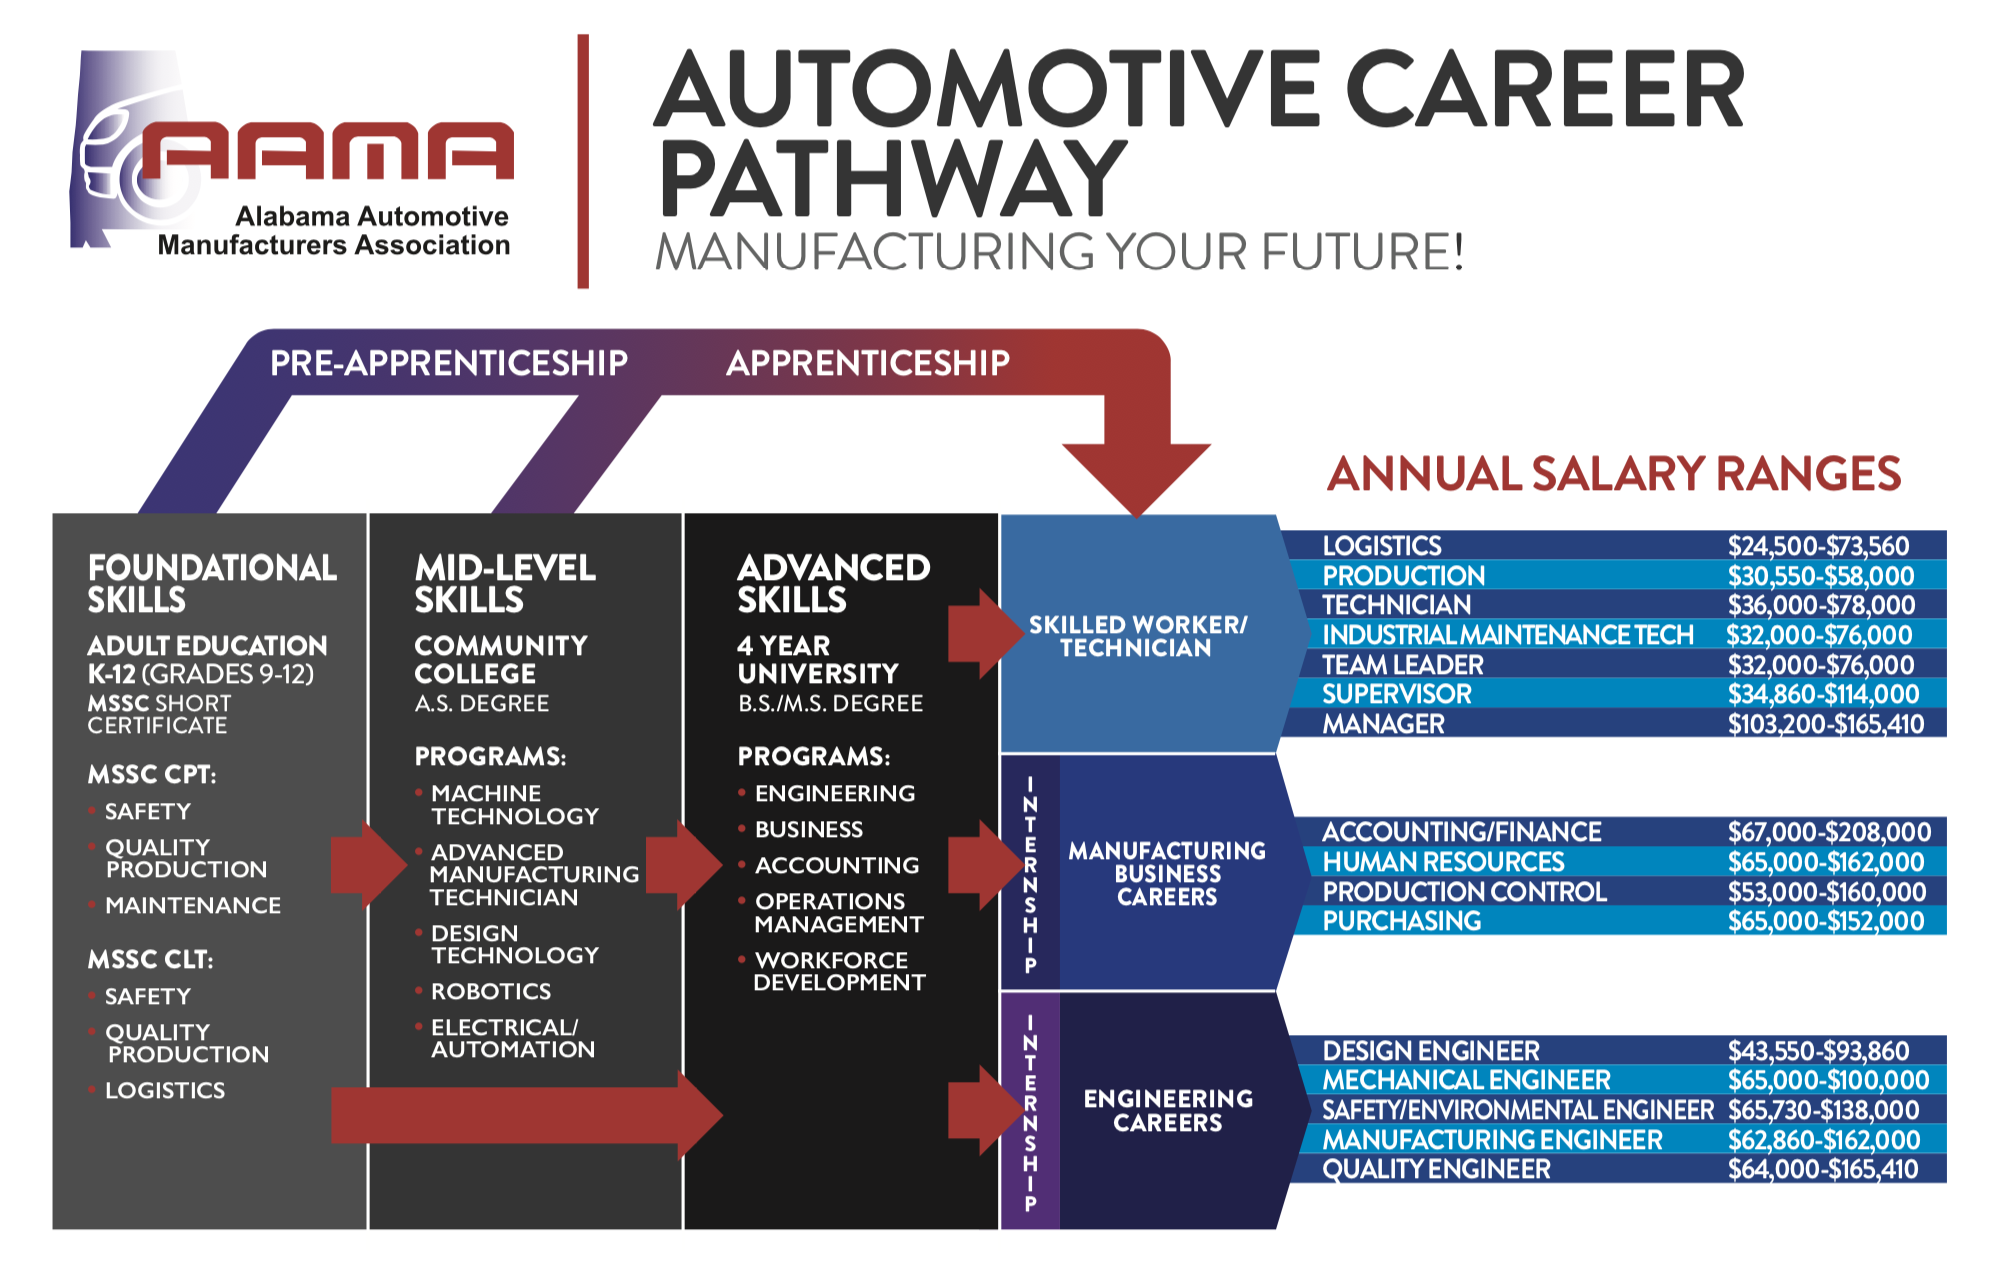 infographic showing pathways in the automotive industry